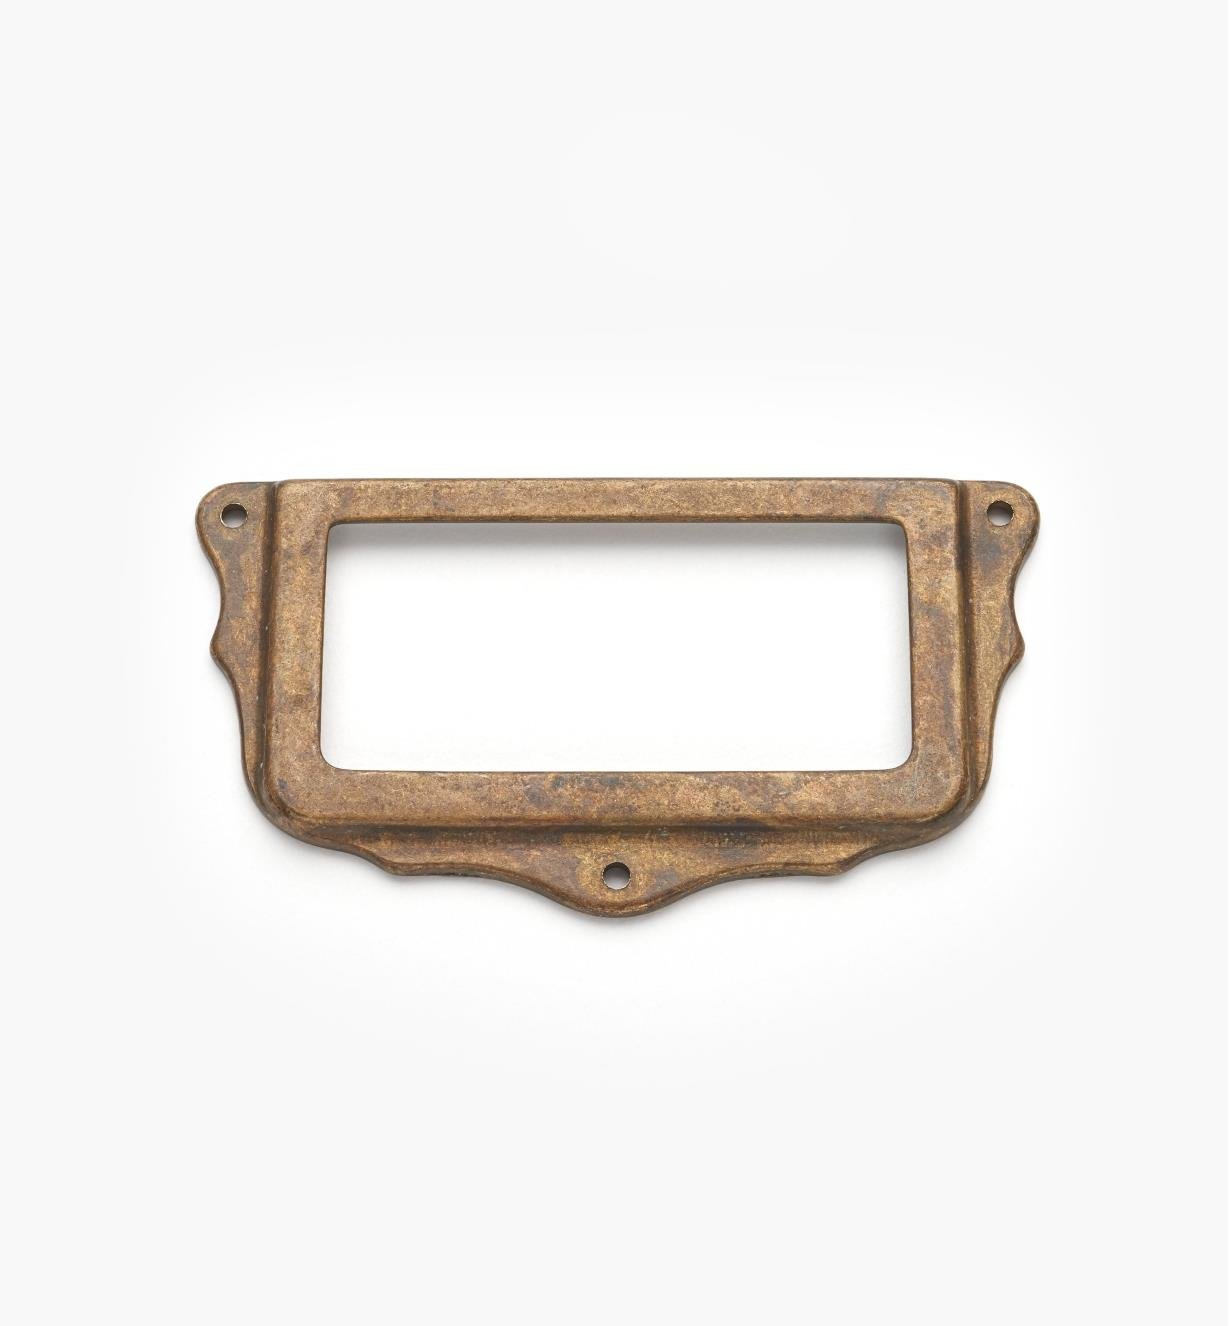 01A5761 - Old Brass Card Frame